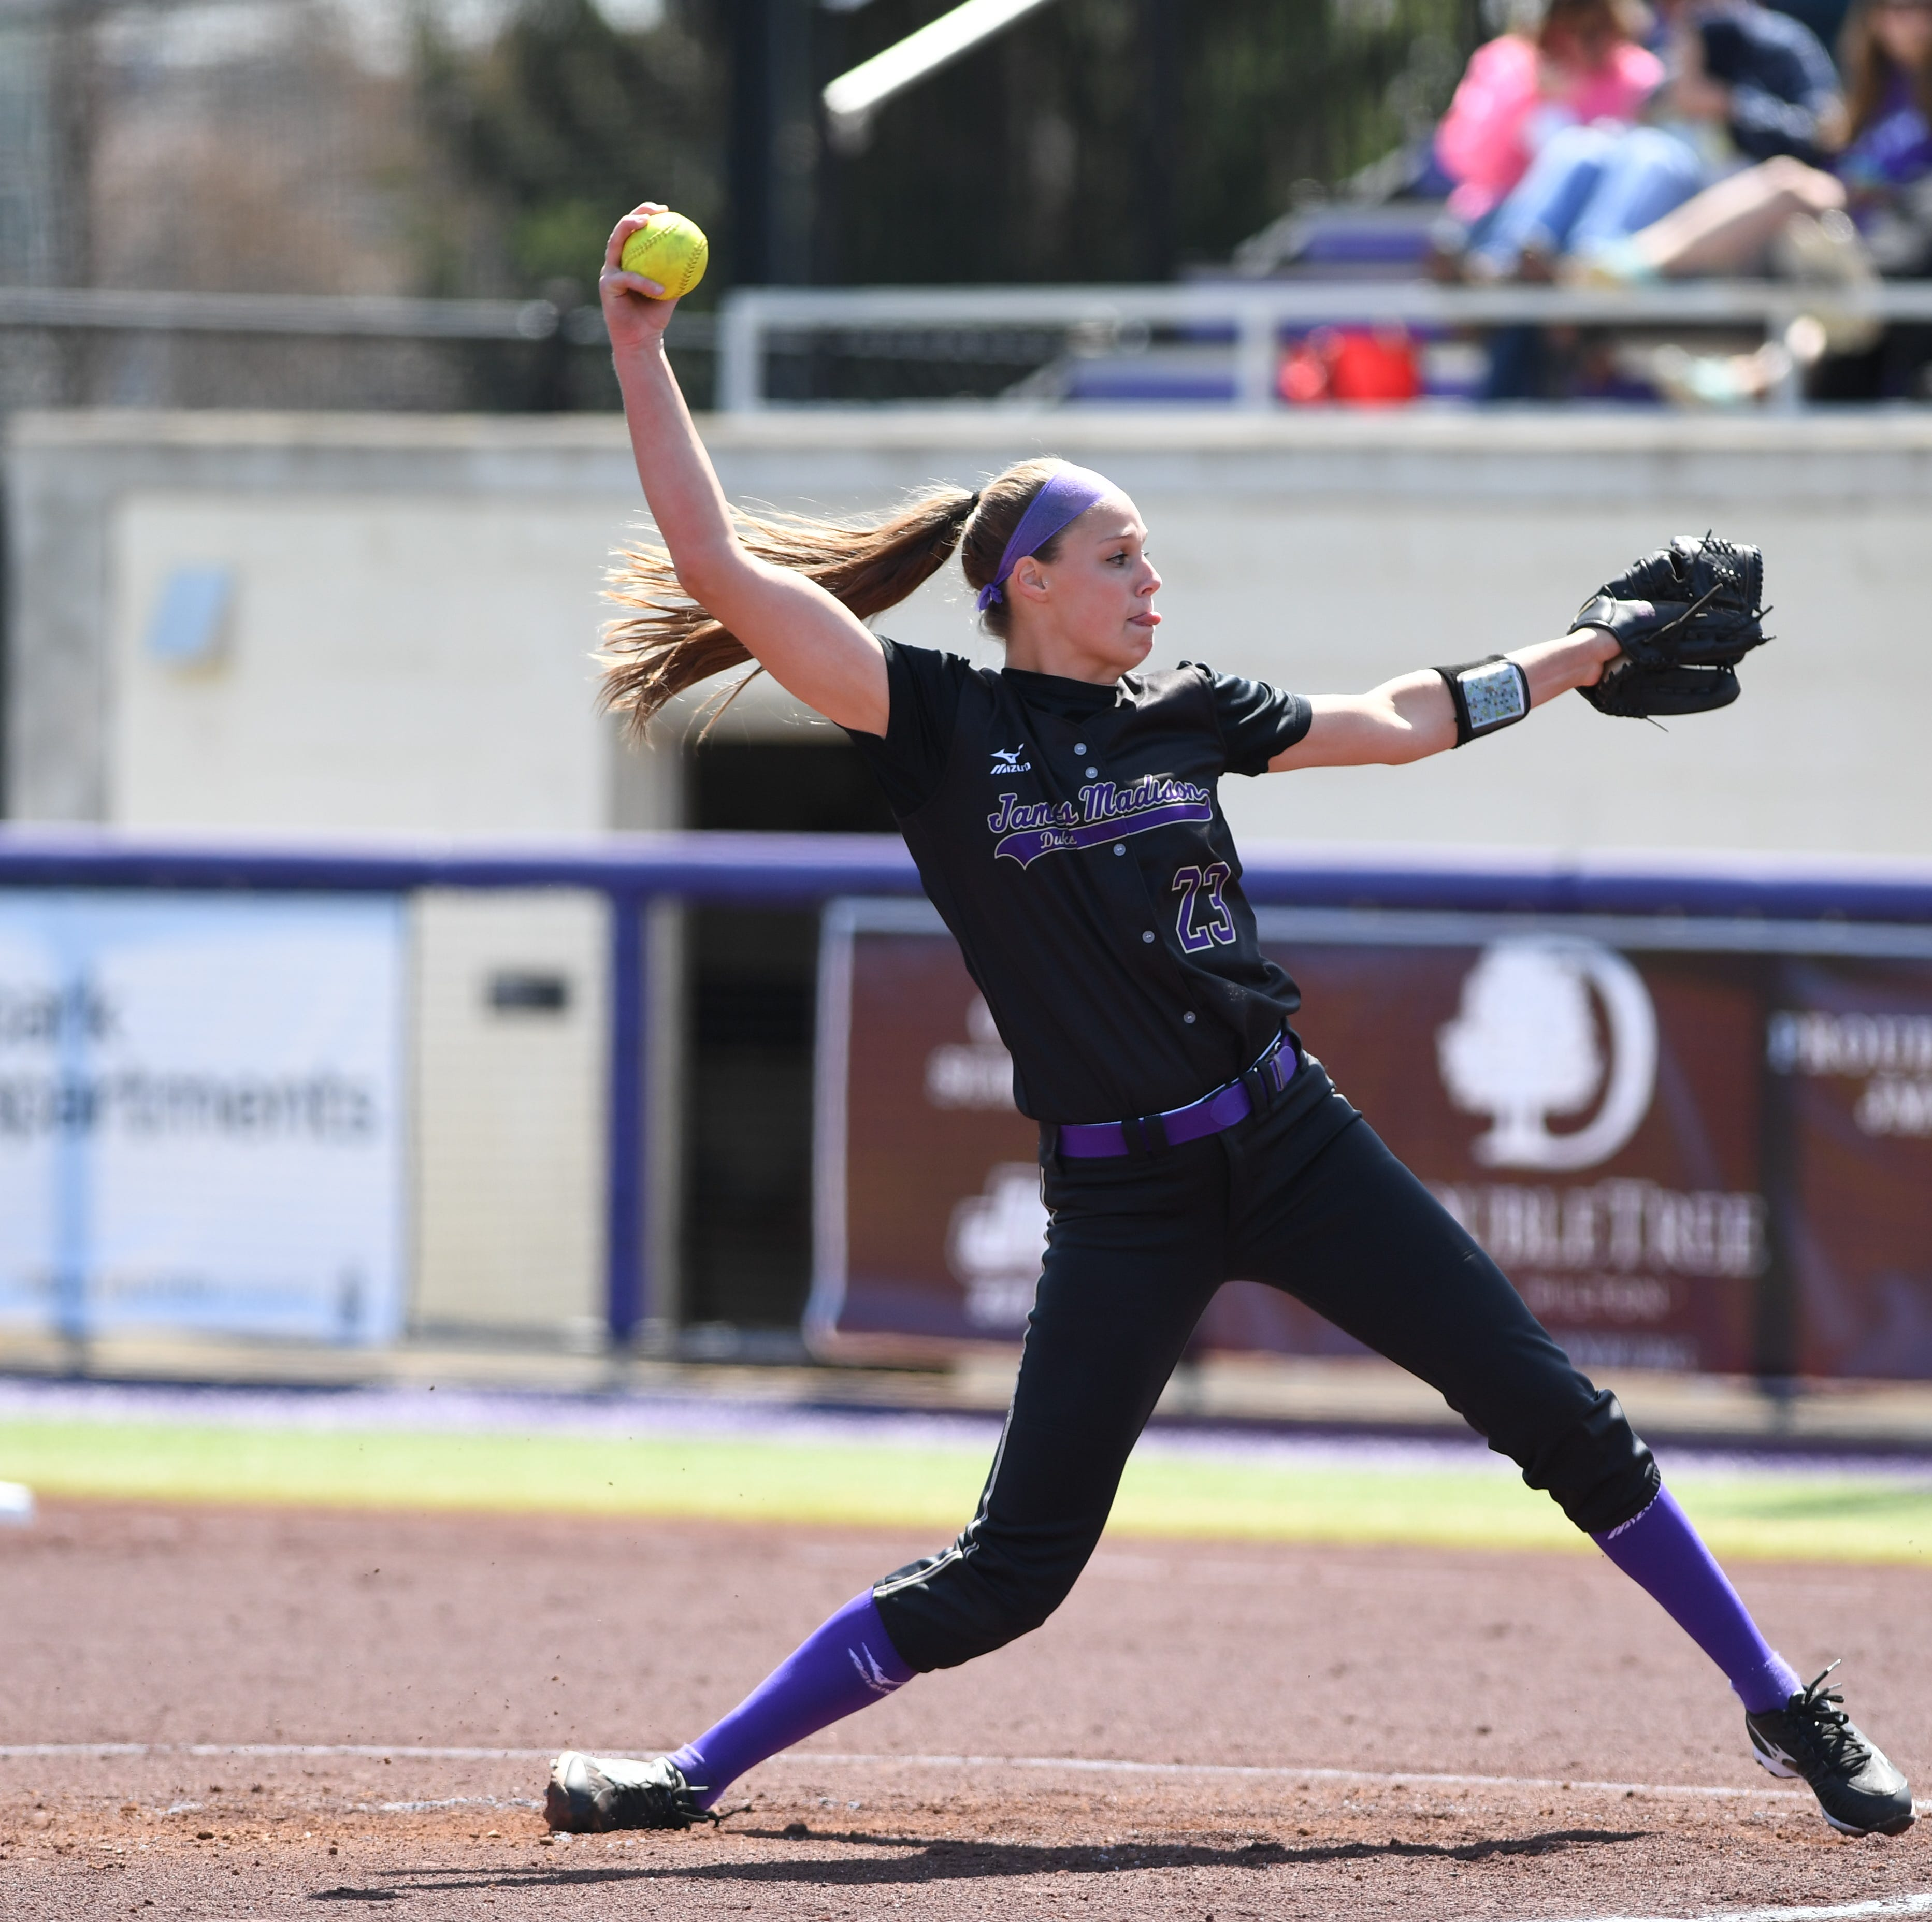 JMU's Megan Good selected in pro softball draft